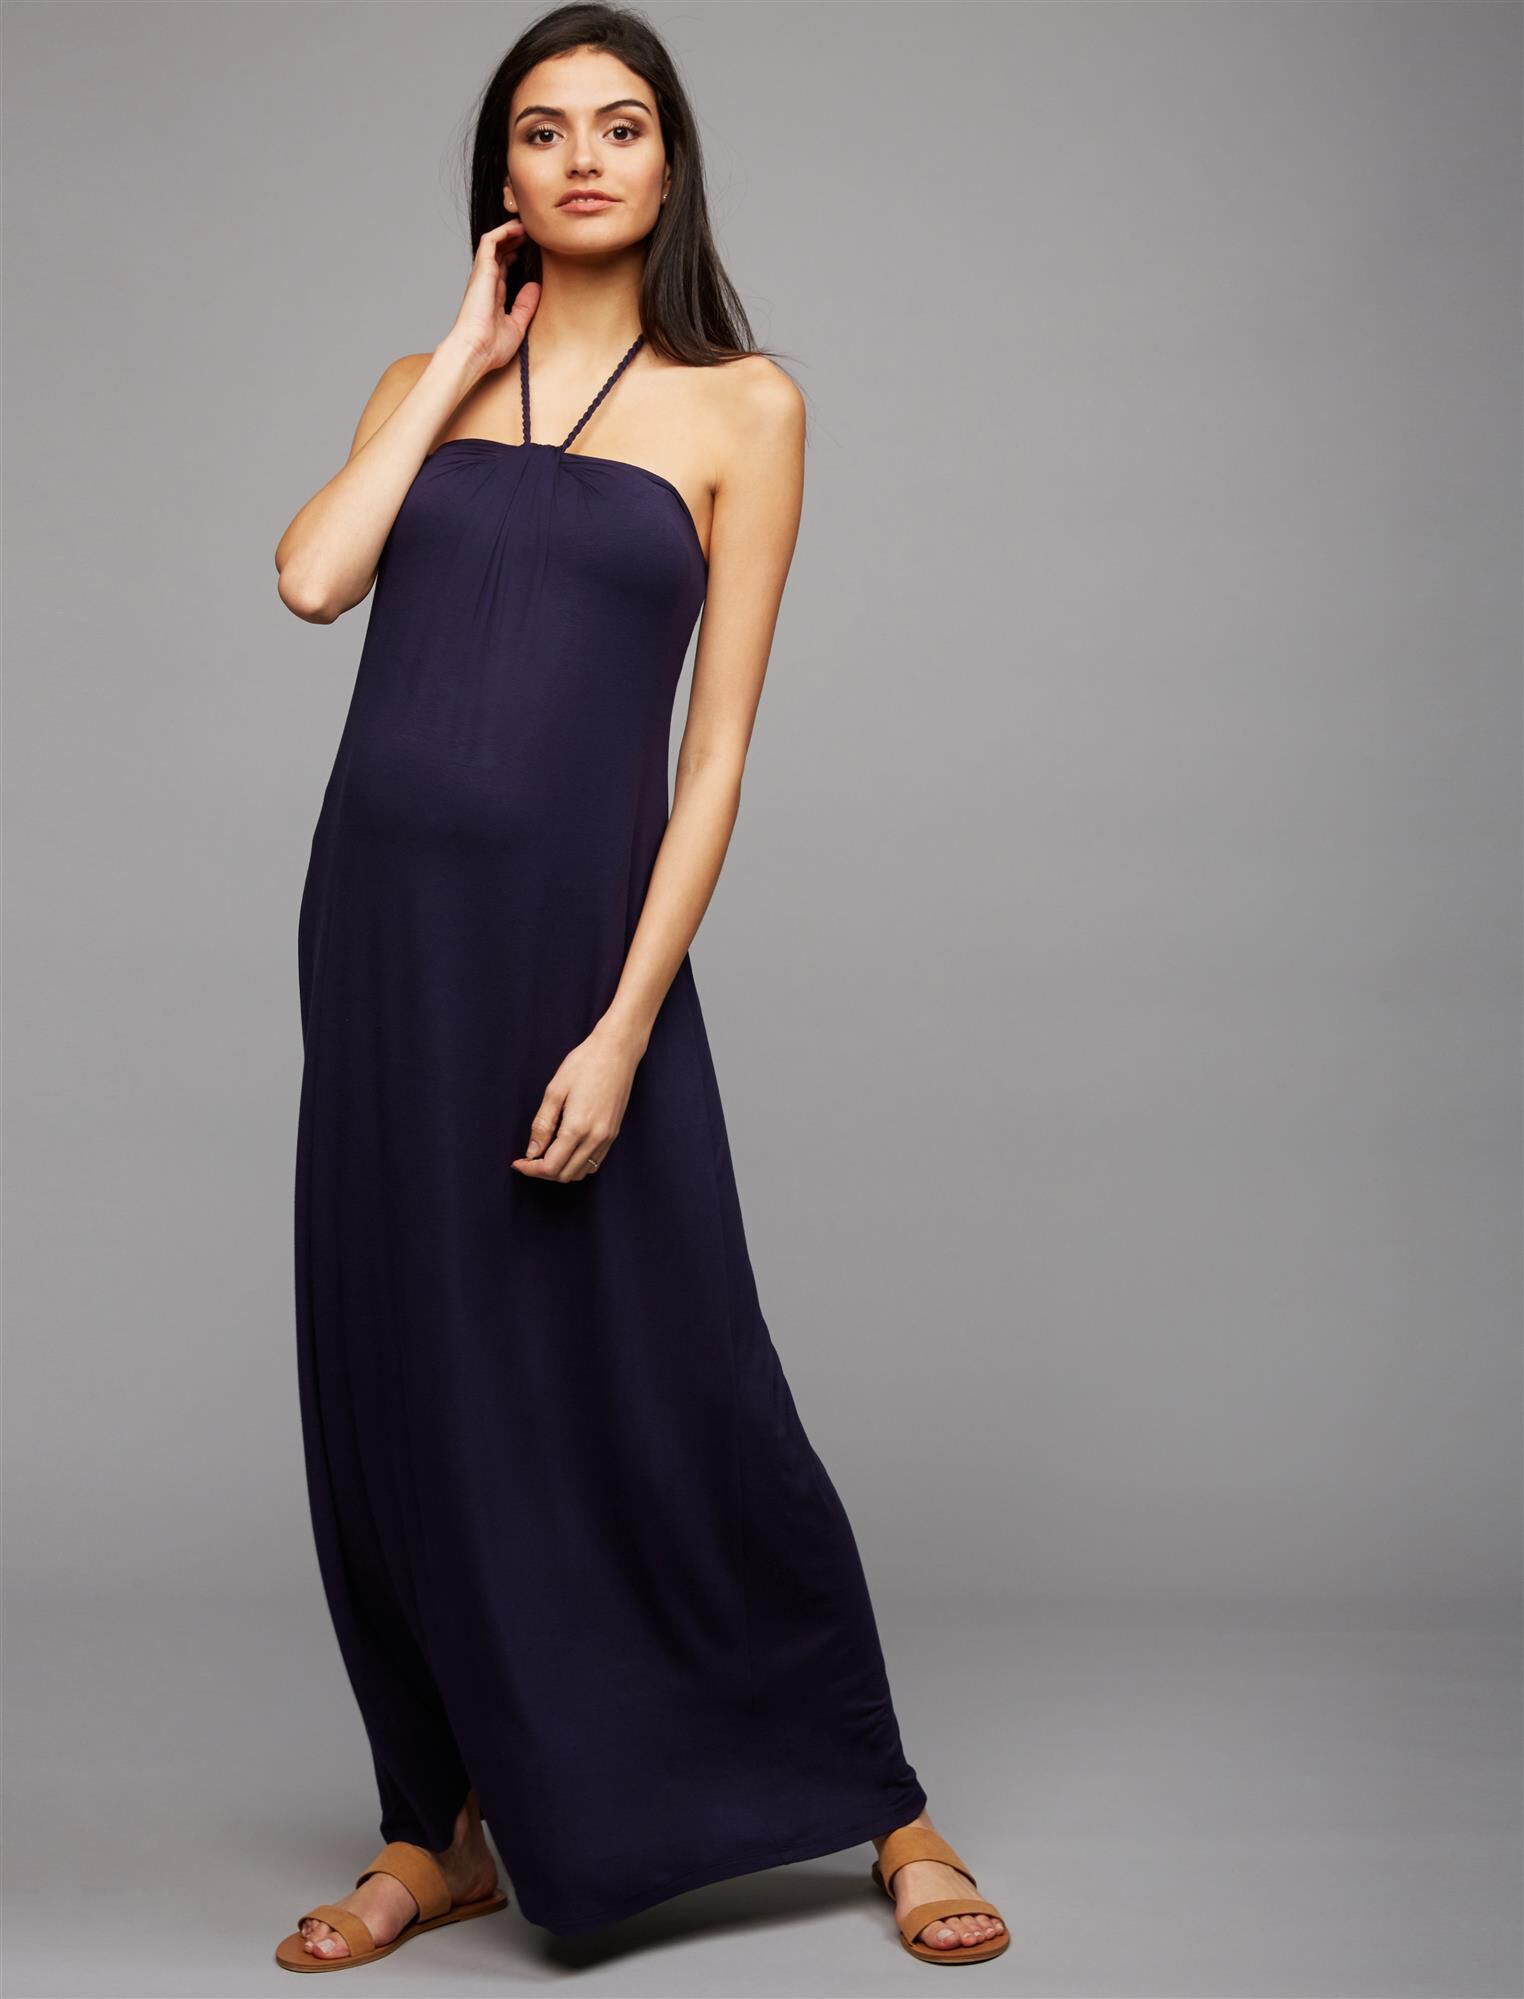 Ella Moss Halter Maternity Dress